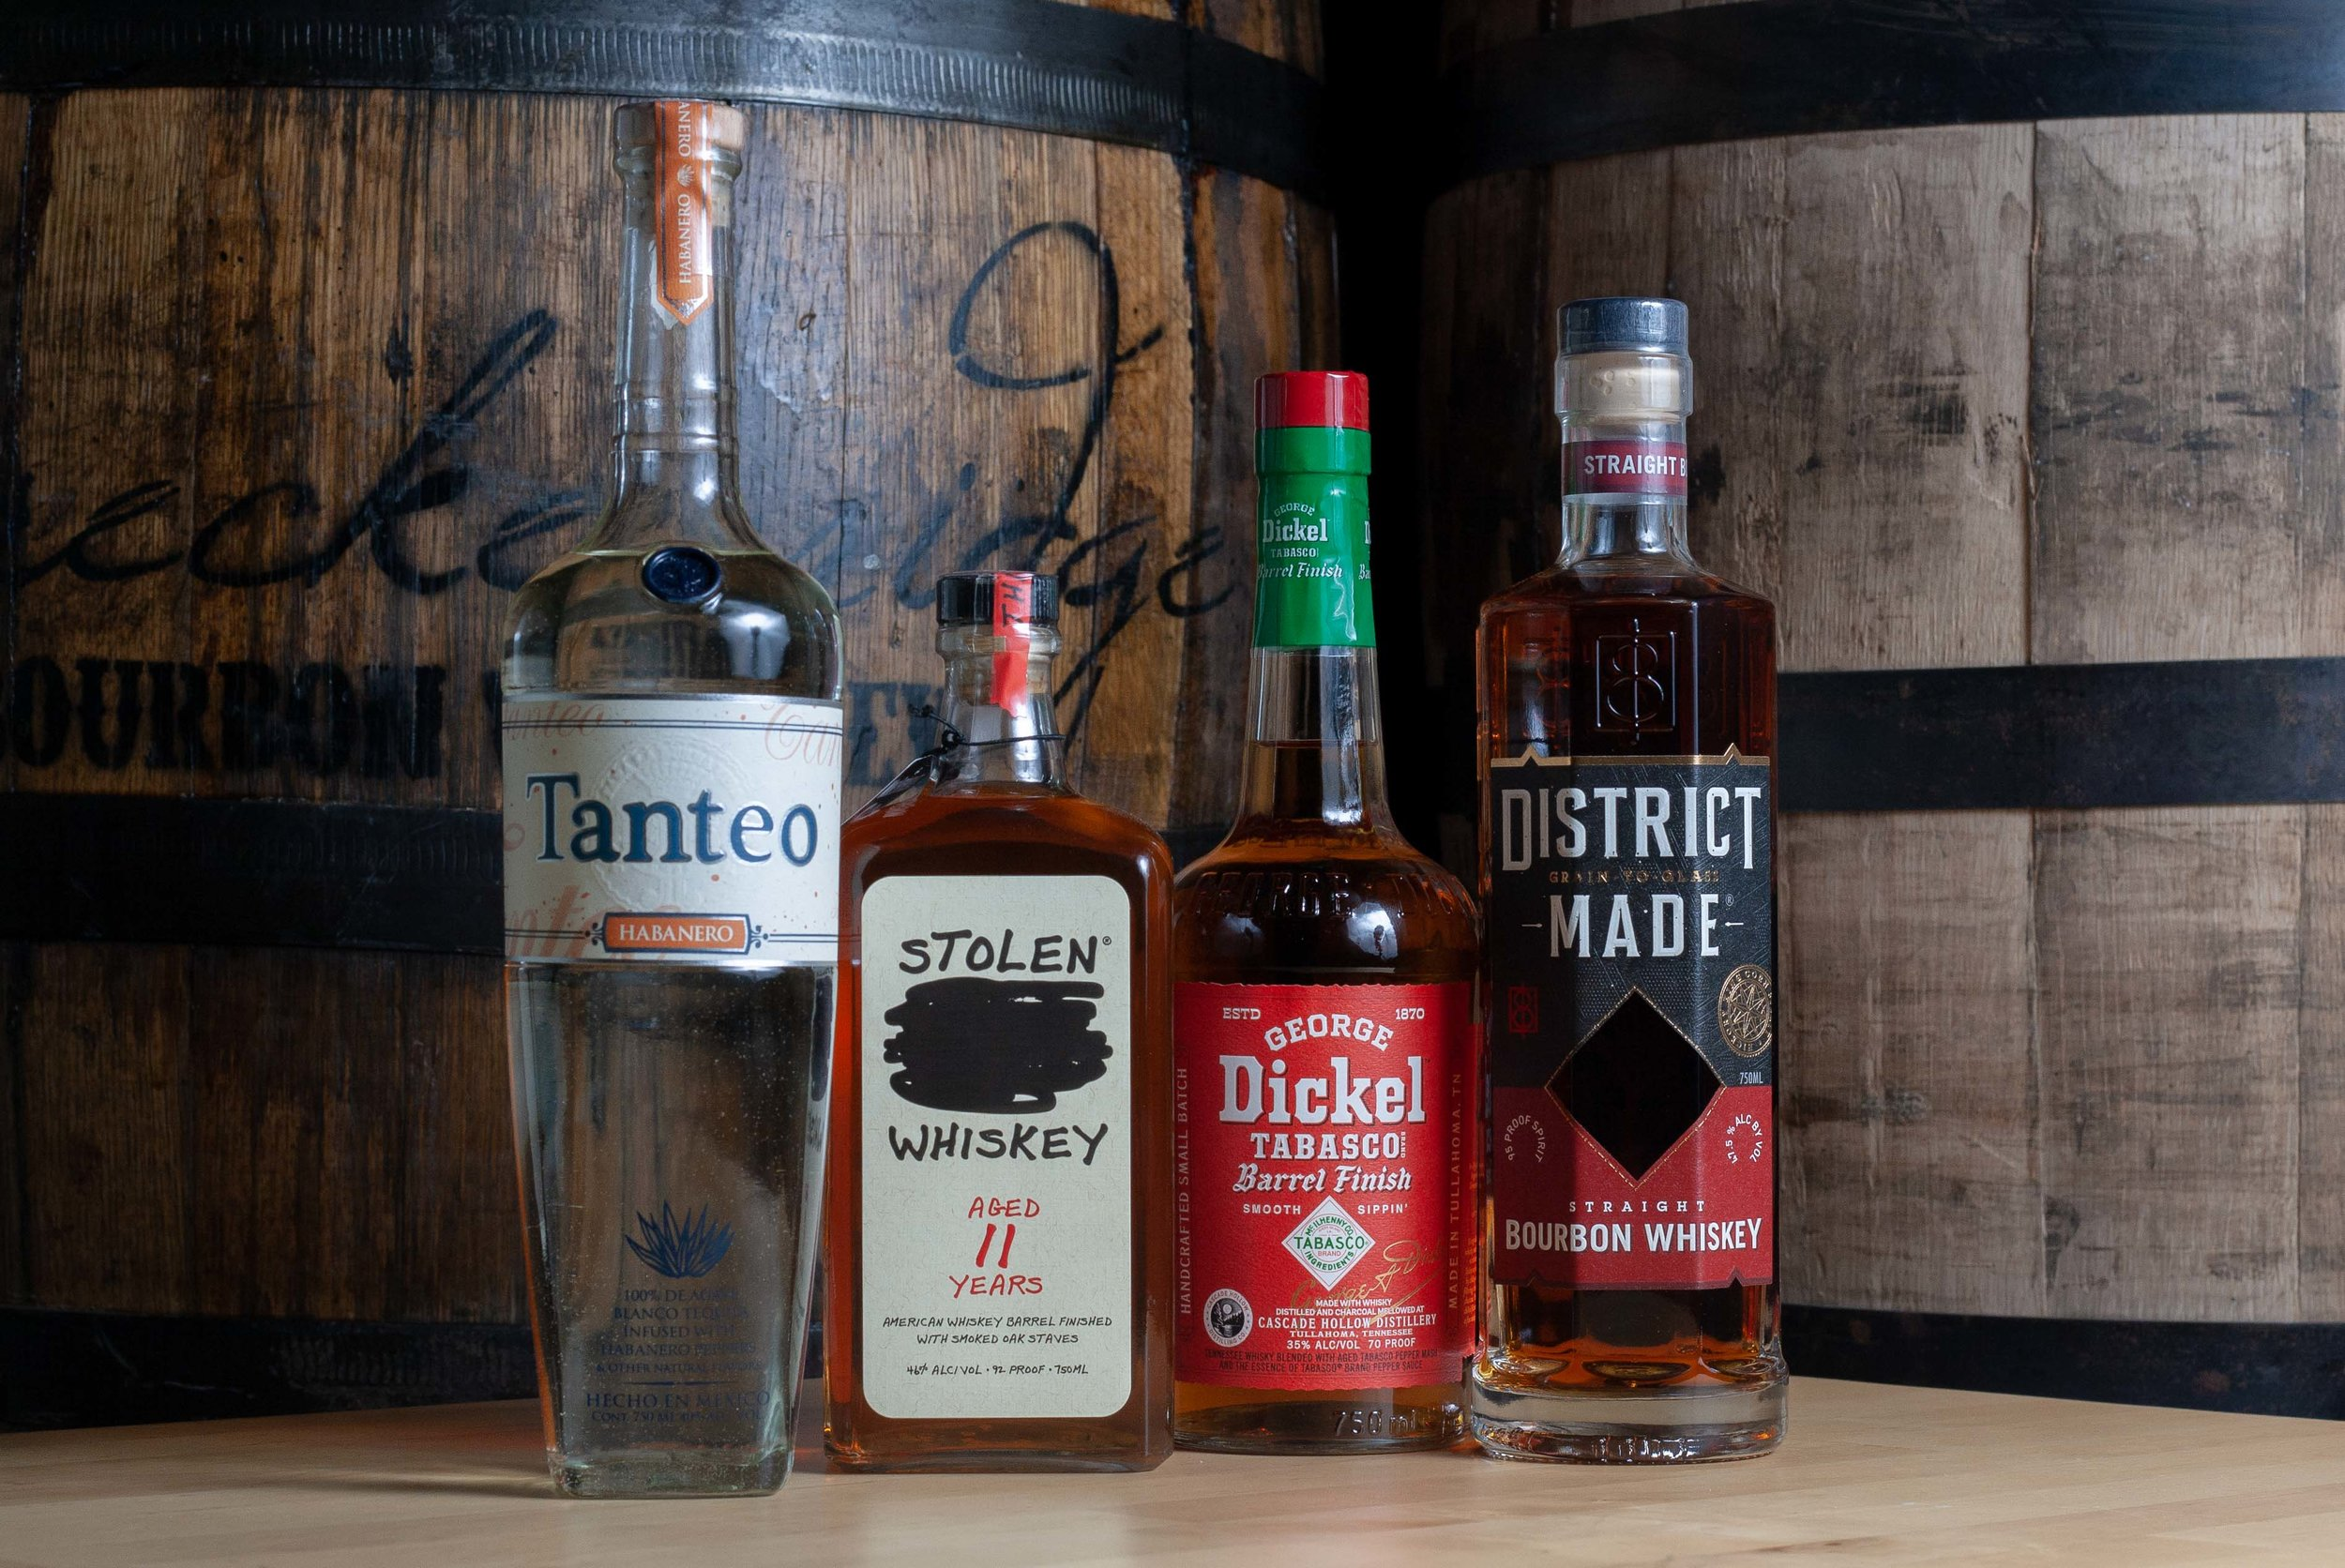 tobasco-dickel-tanteo-one-eight-distilling-stolen-whiskey